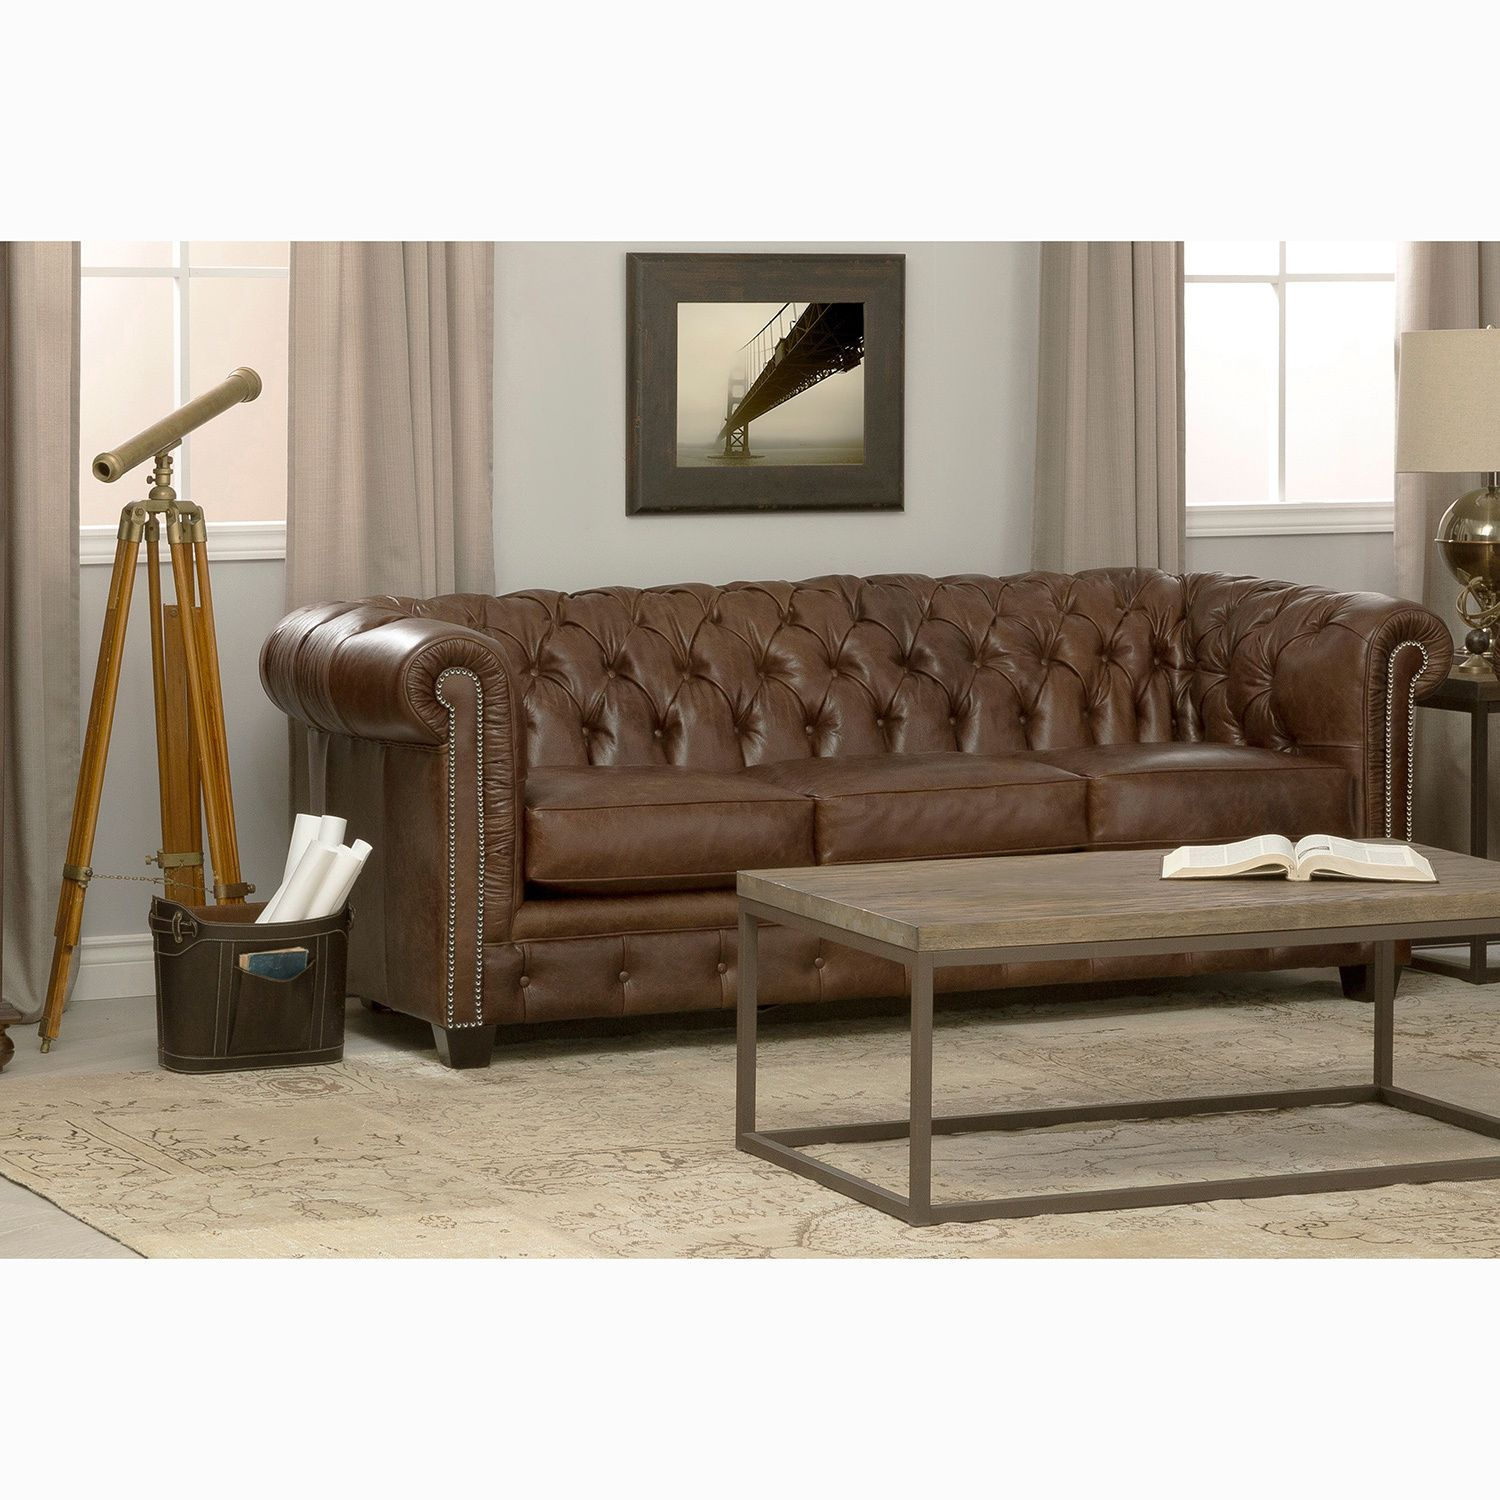 Hancock Tufted Distressed Brown Italian Chesterfield Leather Sofa (Brass)